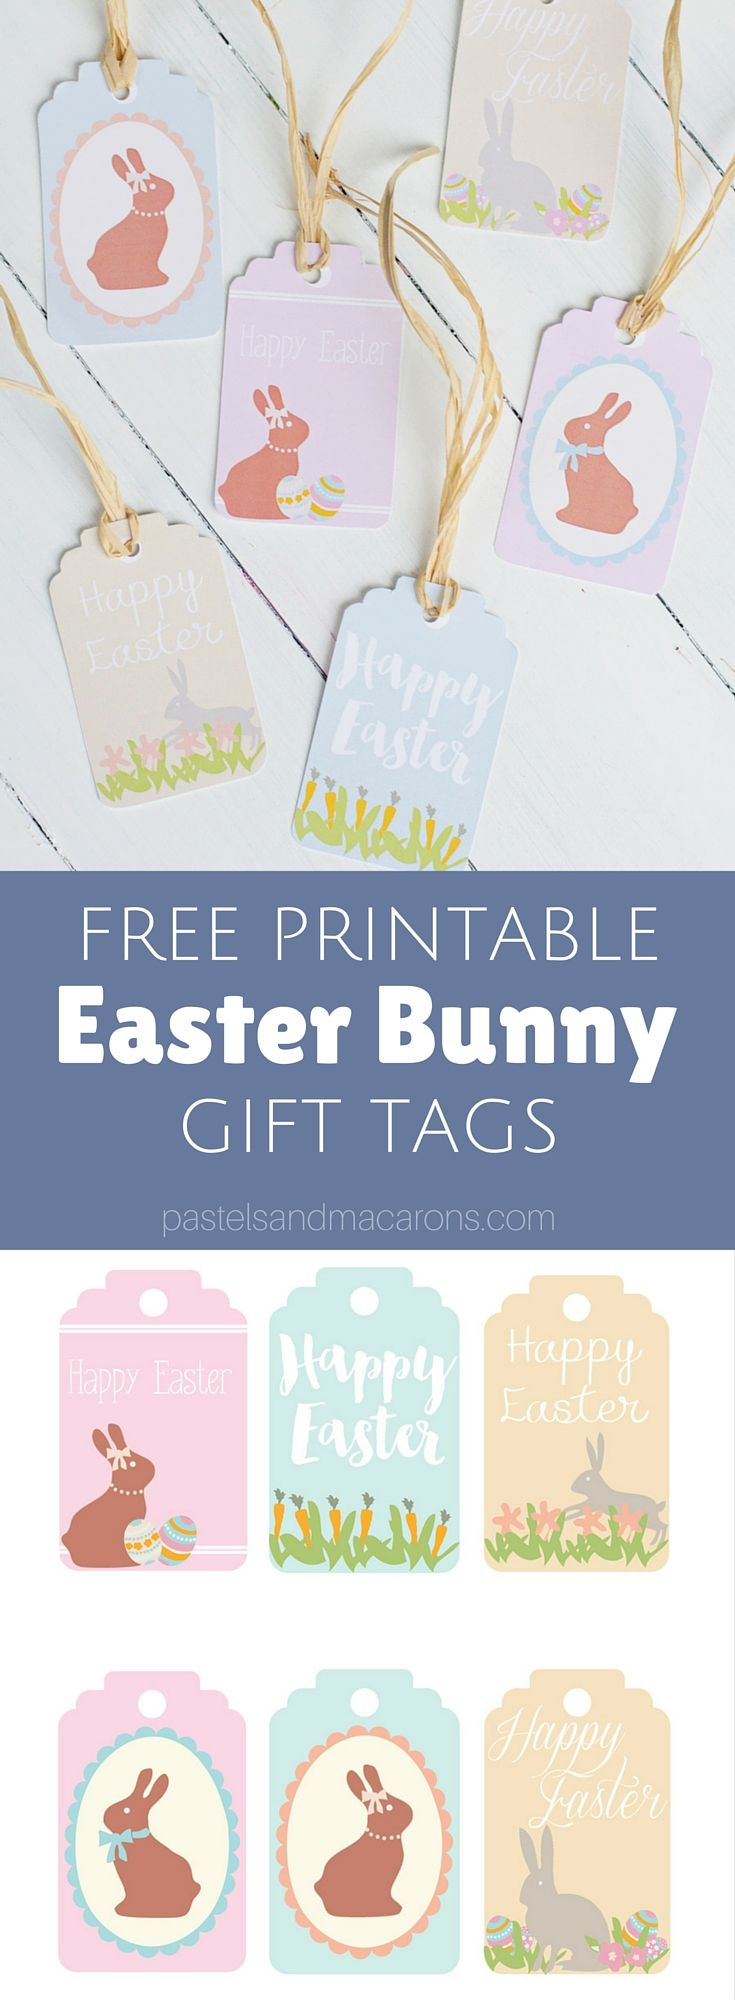 141 best printable gift tags cards images on pinterest party download these adorable easter gift tags printable for free negle Choice Image